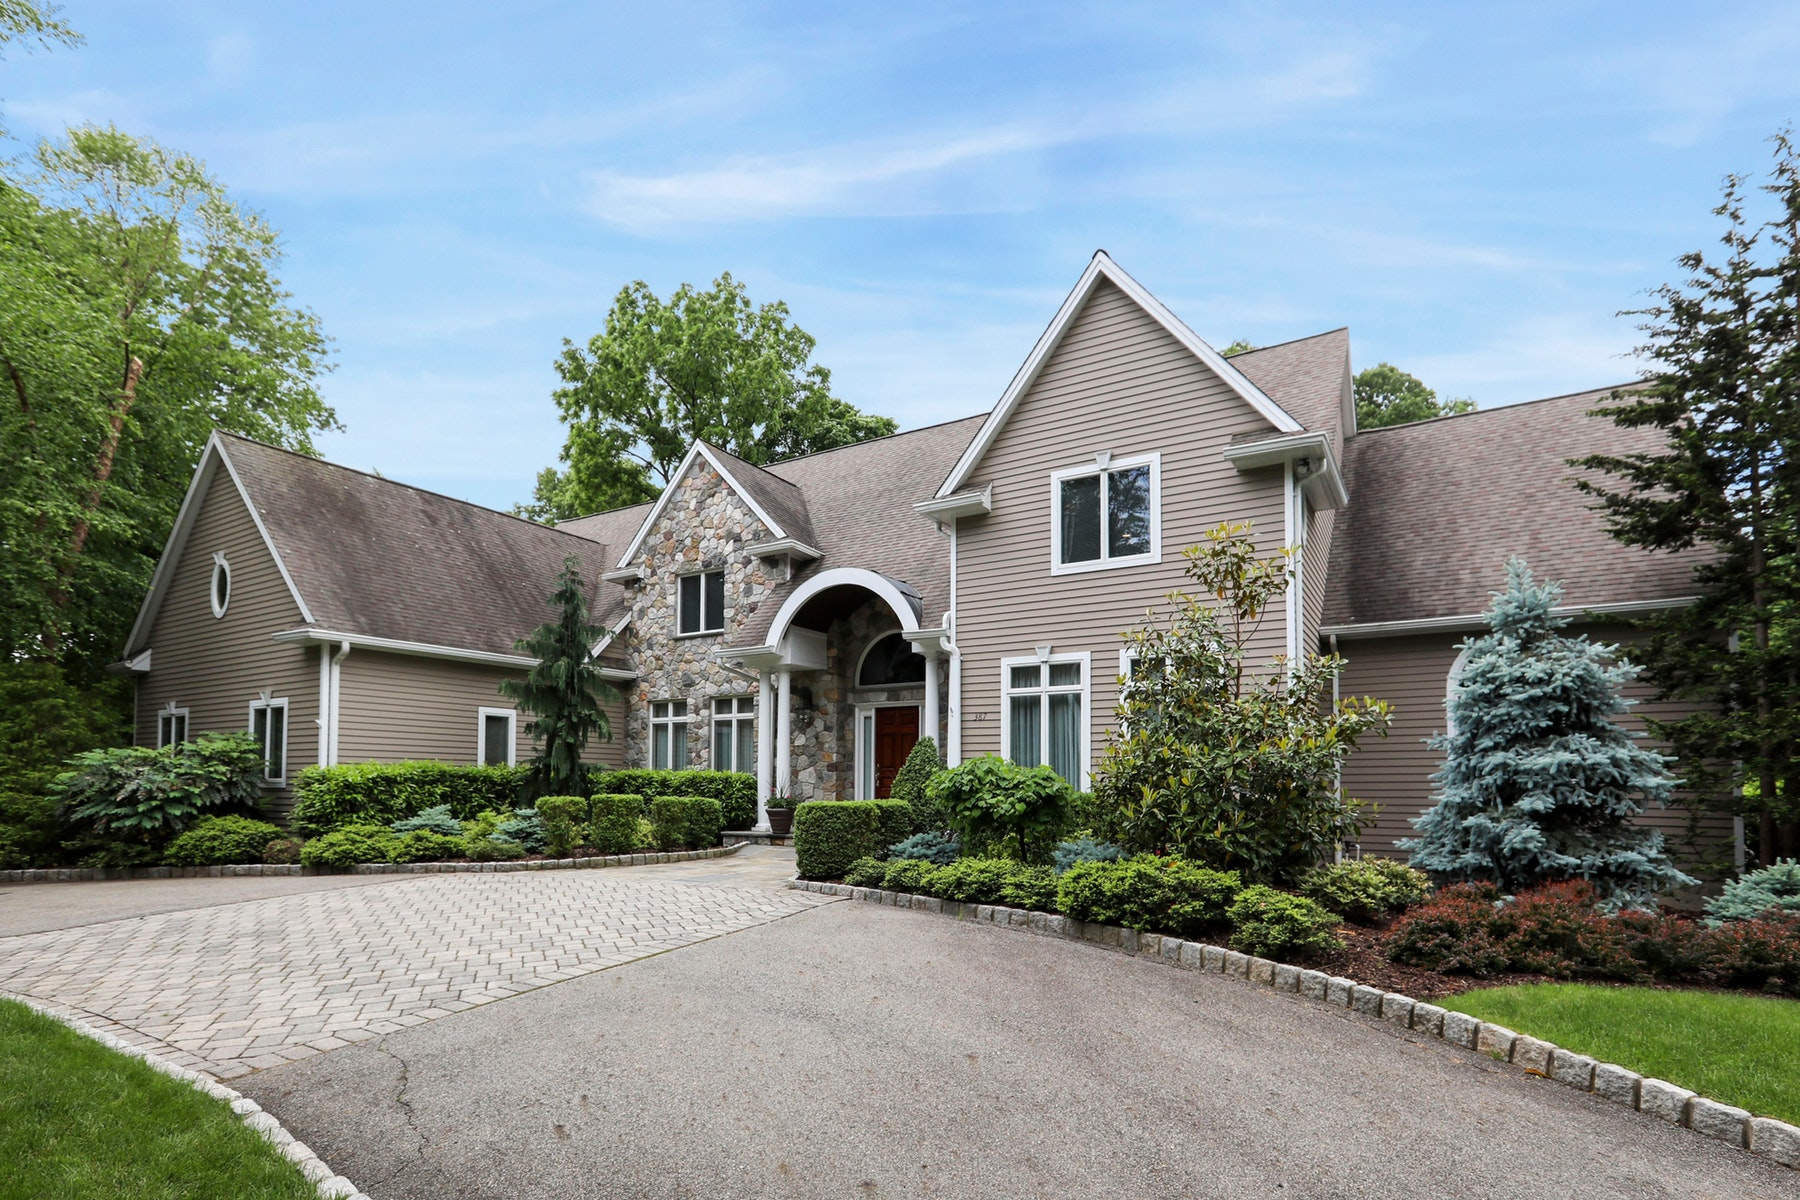 Single Family Home for Sale at Cedar & Stone Beauty ! 387 Wearimus Rd, Ho Ho Kus, New Jersey 07423 United States